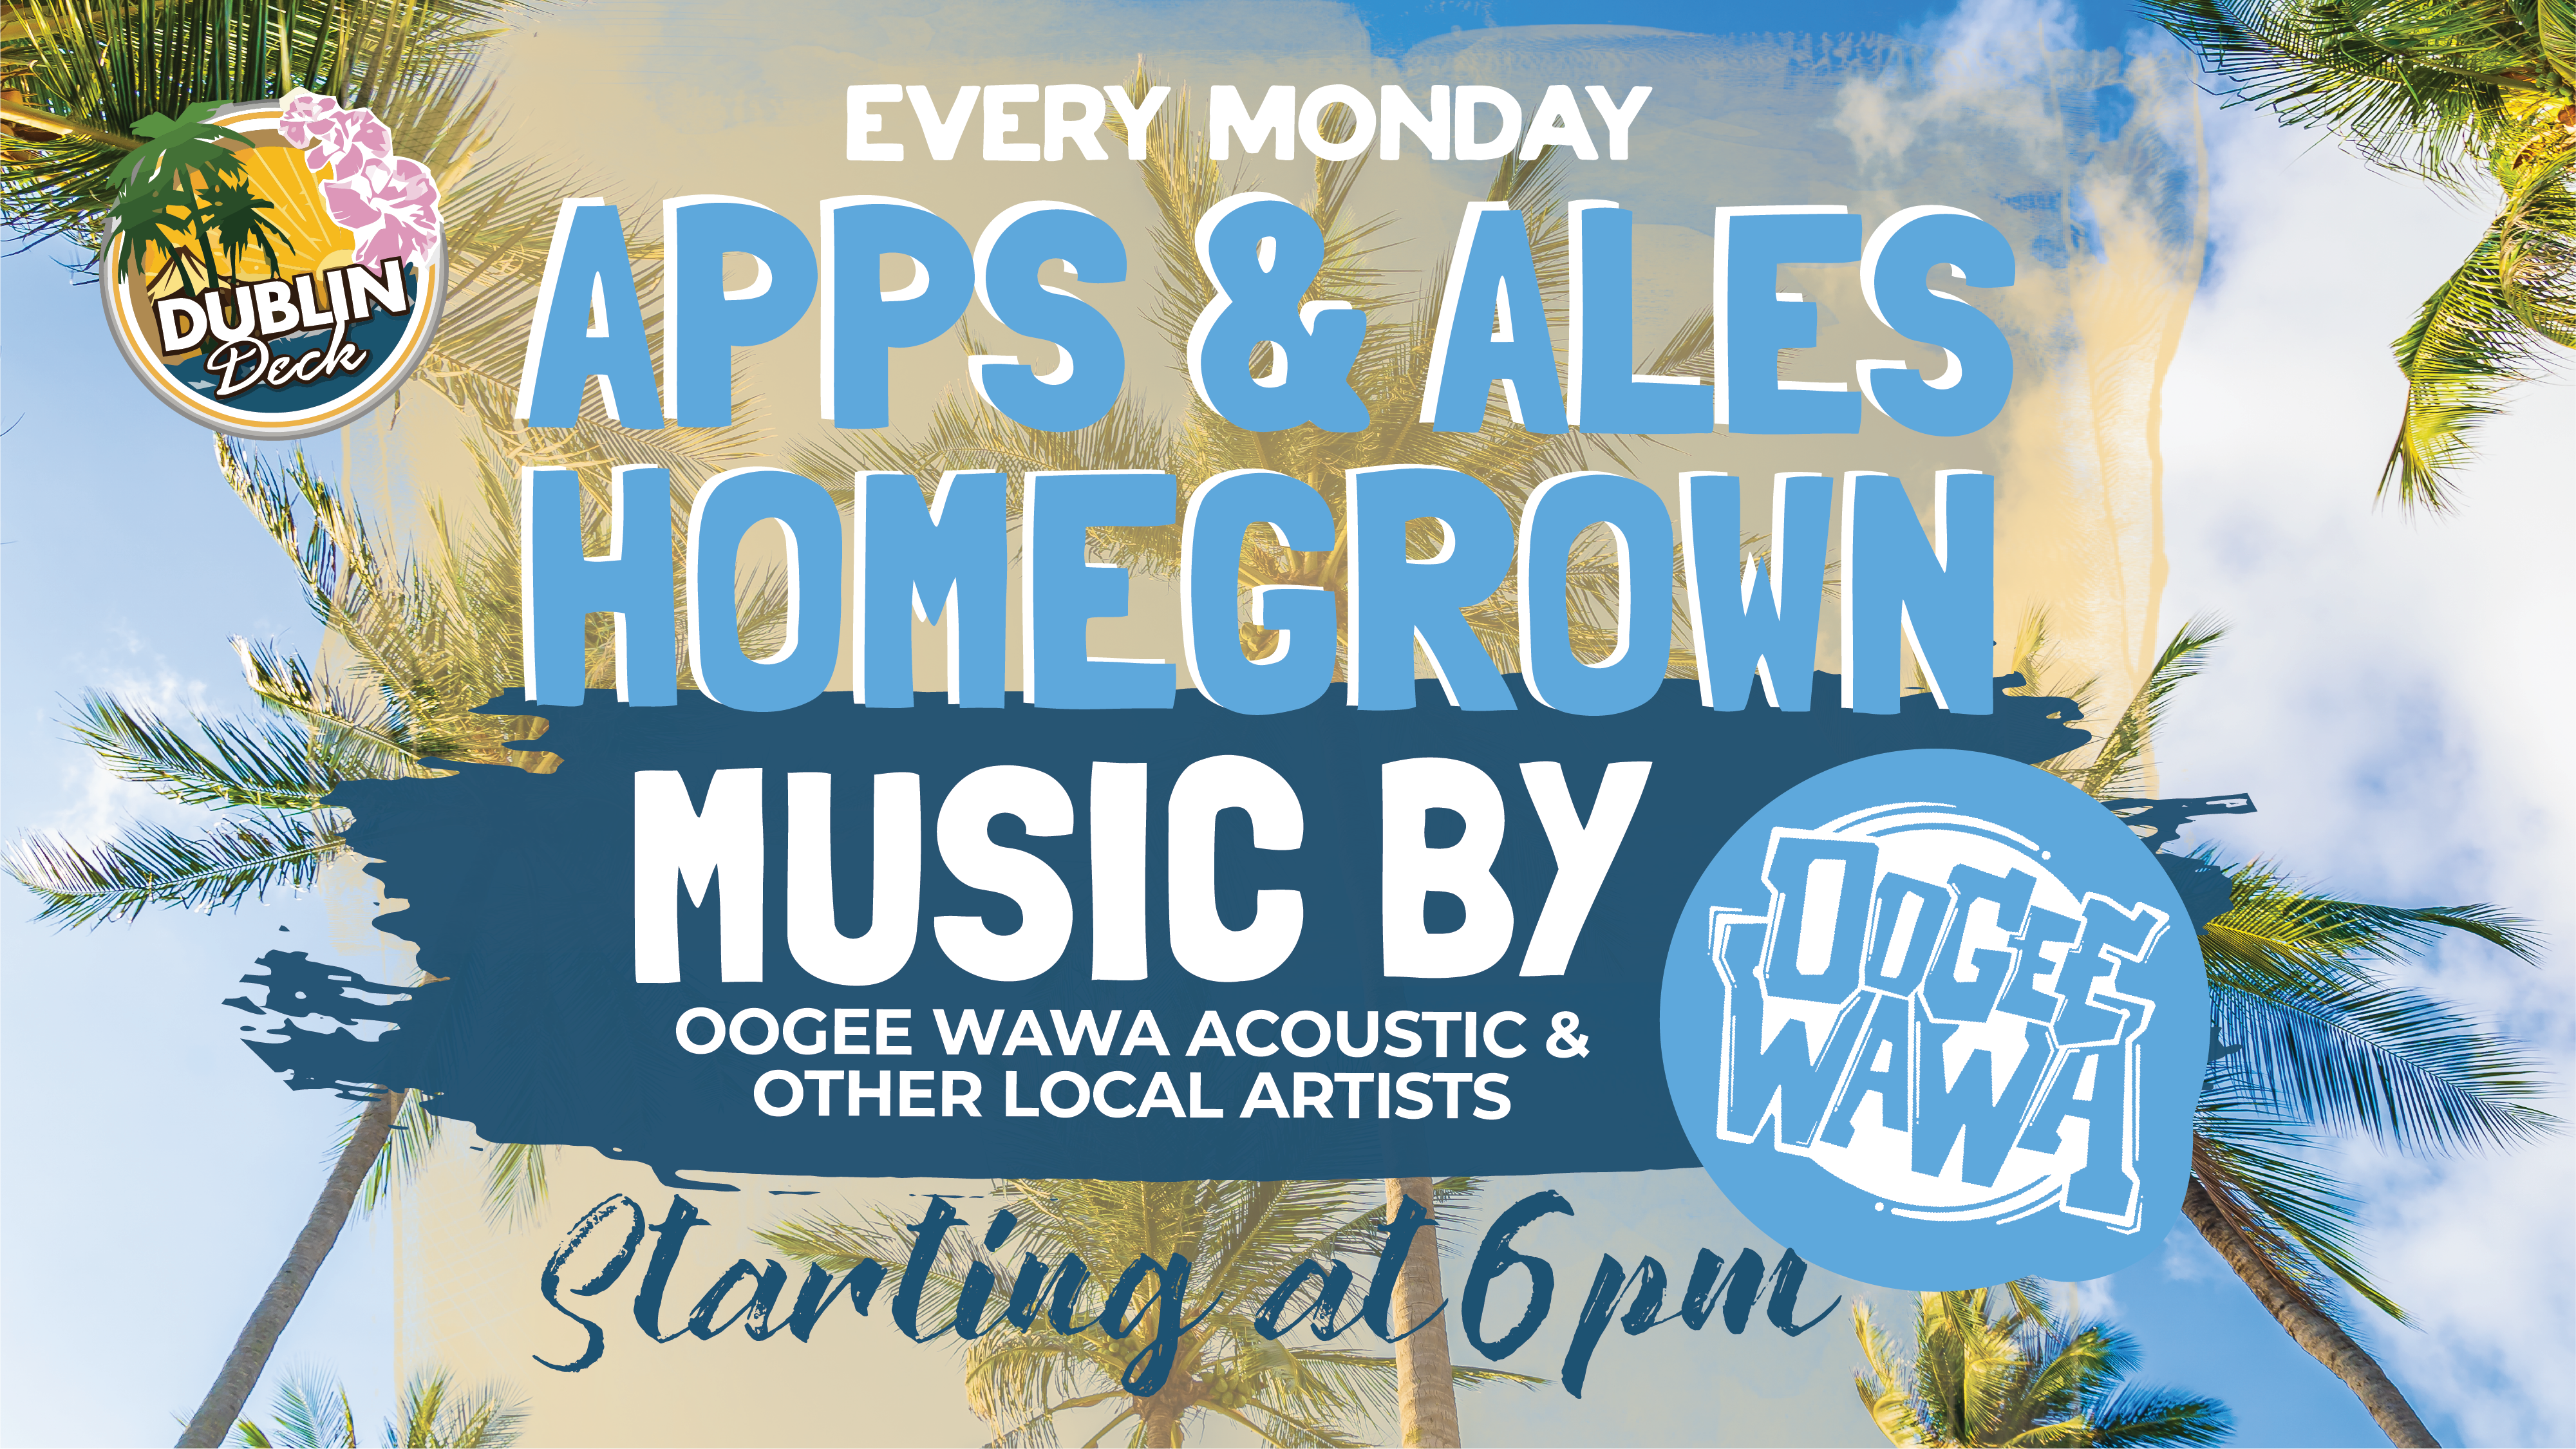 Live Music with Oogee Wawa Every Monday